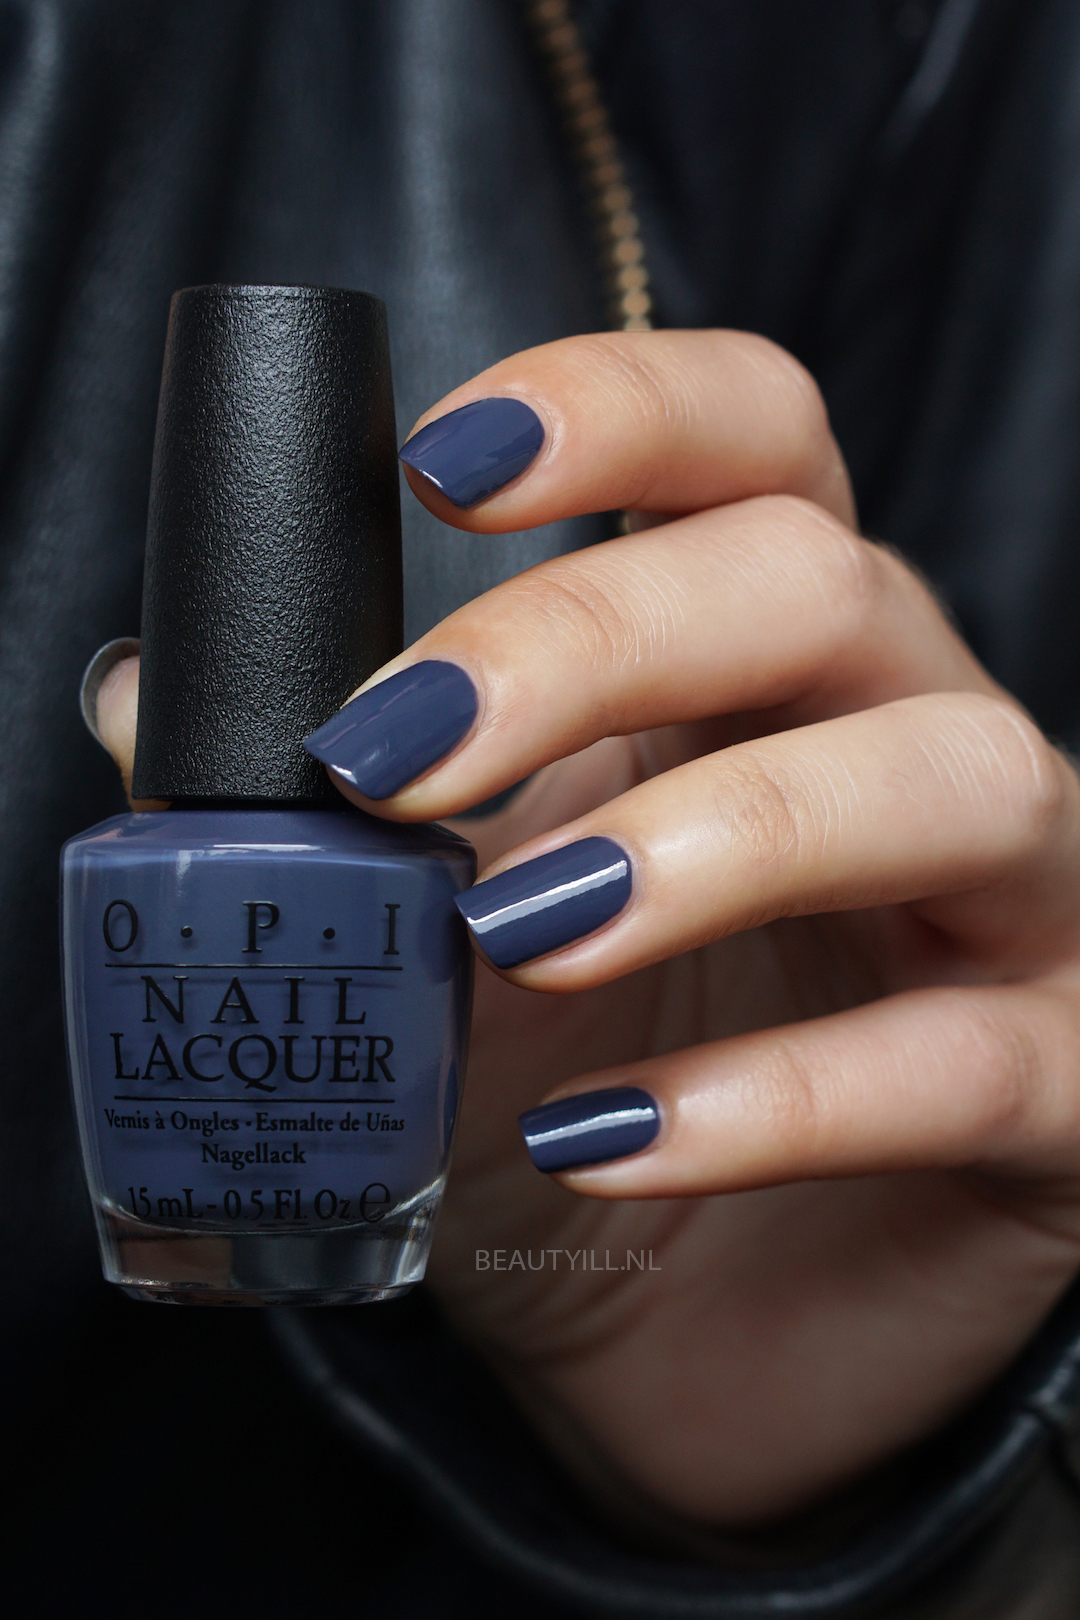 Opi Iceland Collection Swatches Beautyill